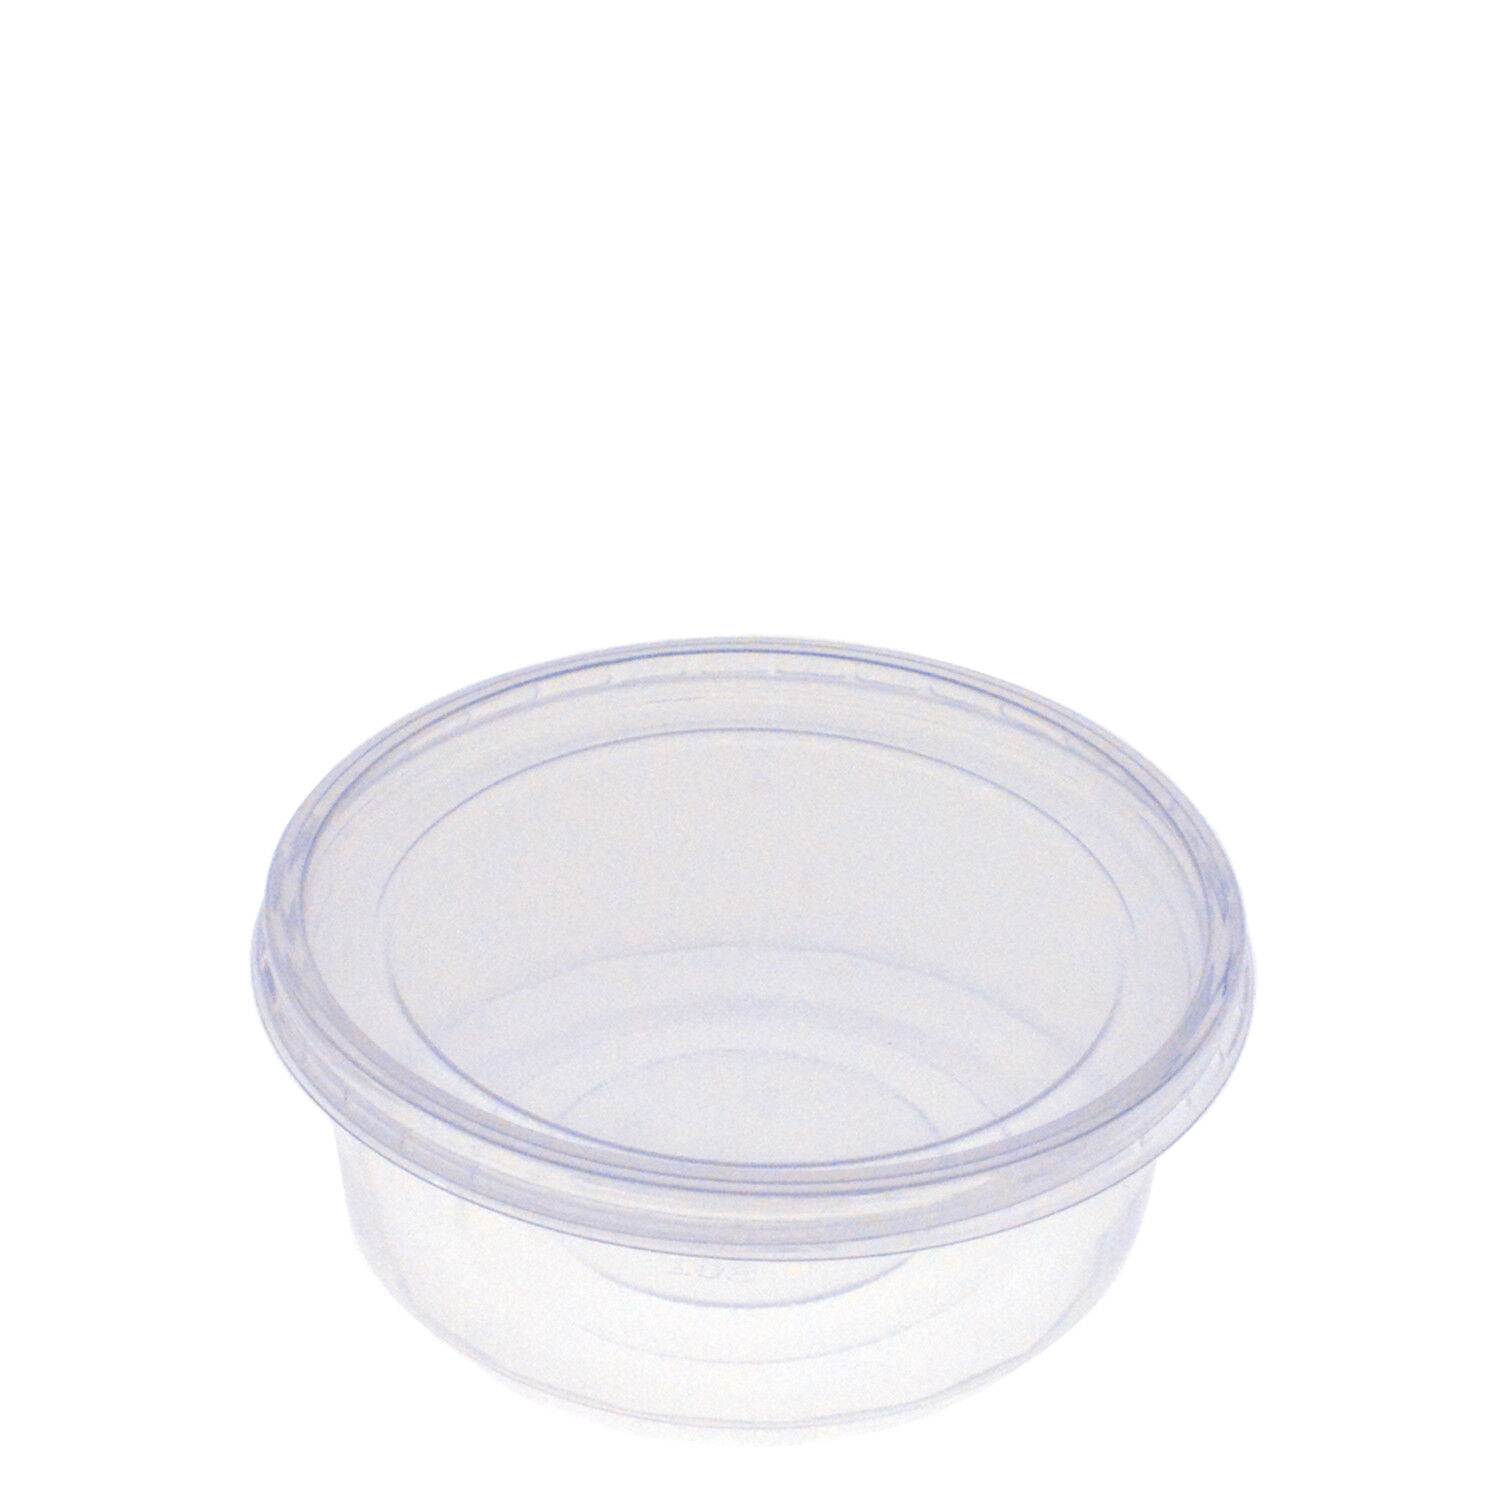 8oz Round Plastic Deli Food Containers with Lids BPA FREE- FREE SHIPPING